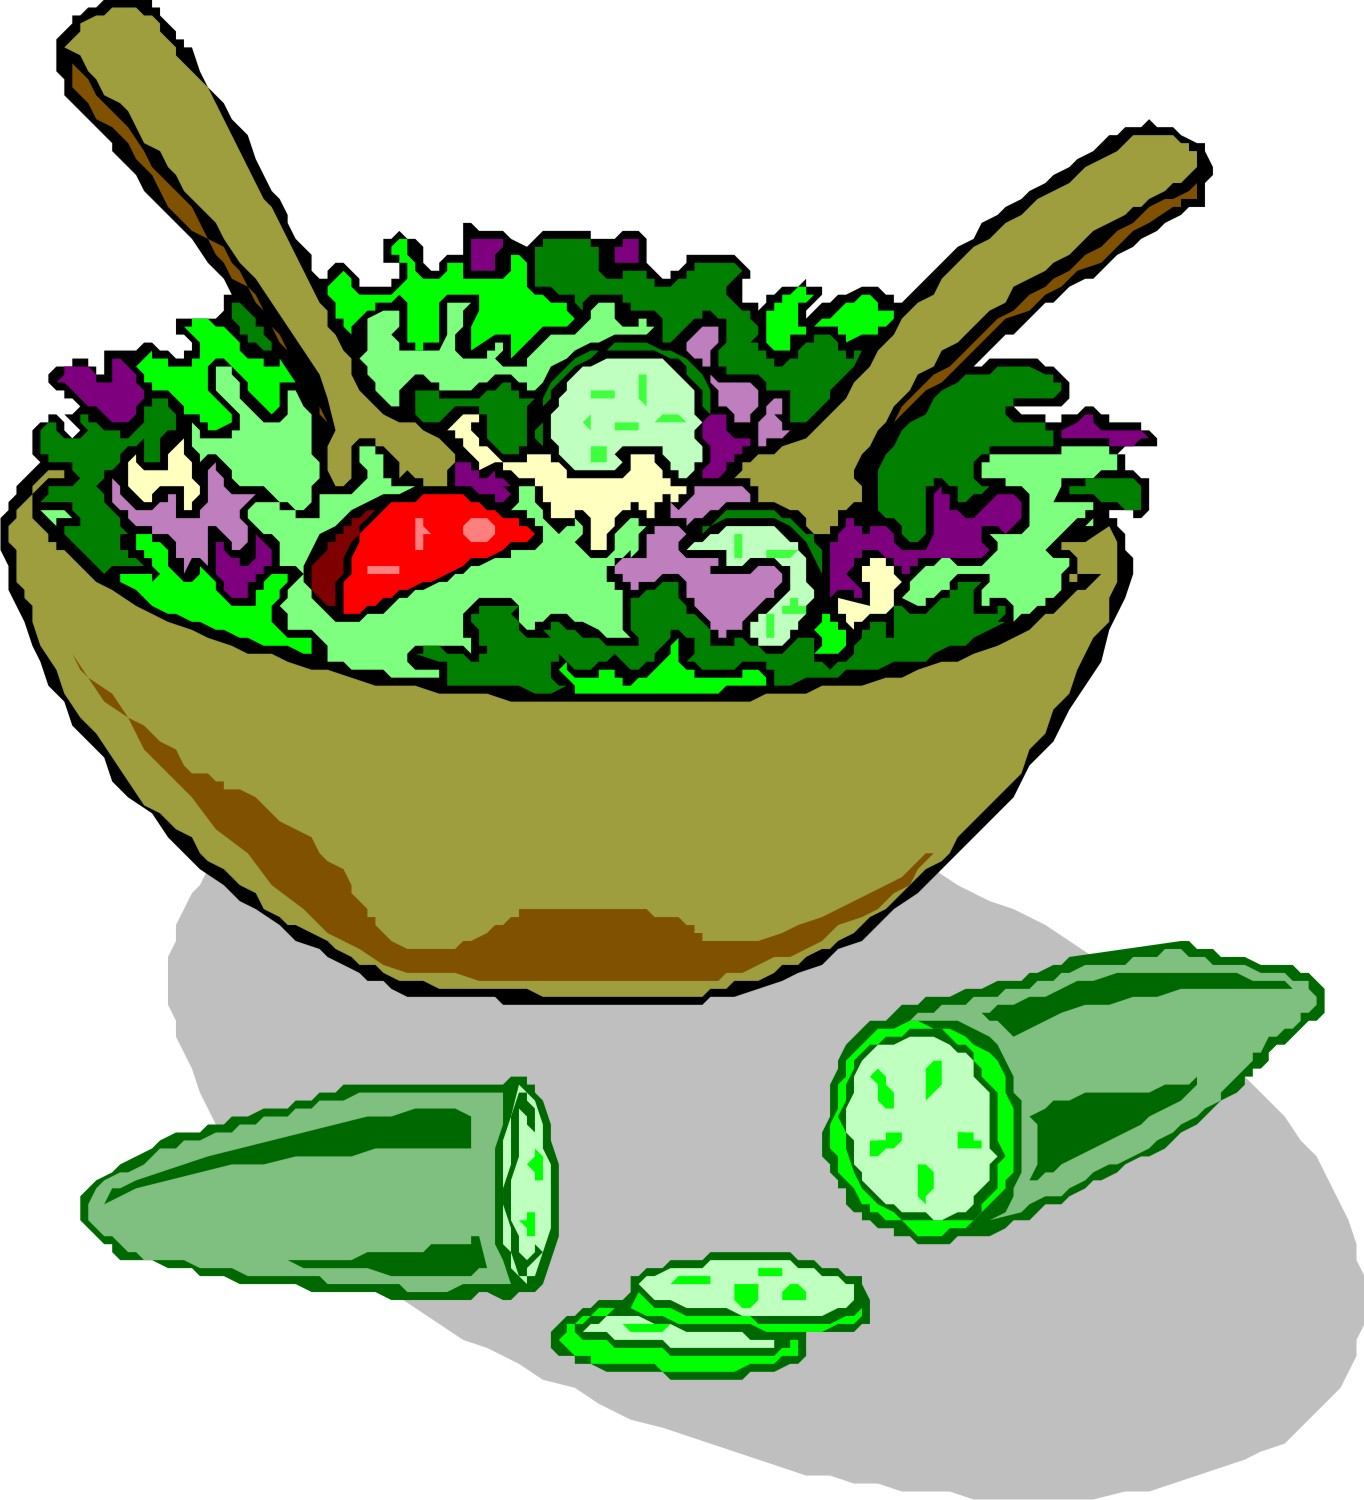 Salad bowl clipart 3 » Clipart Station.